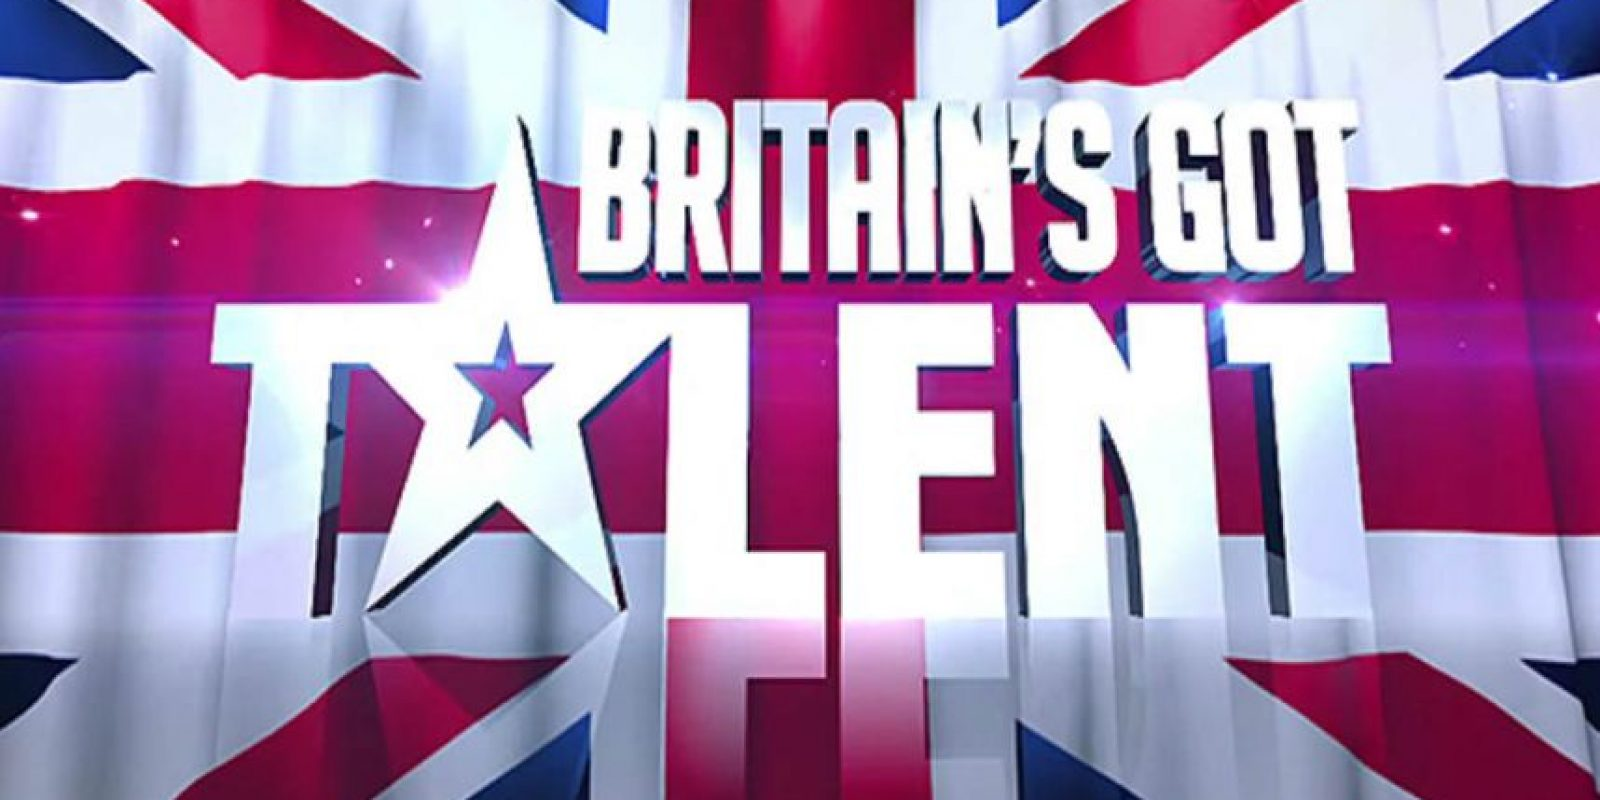 """Britain's Got Talent"" es un programa británico. Foto: Britain's Got Talent"